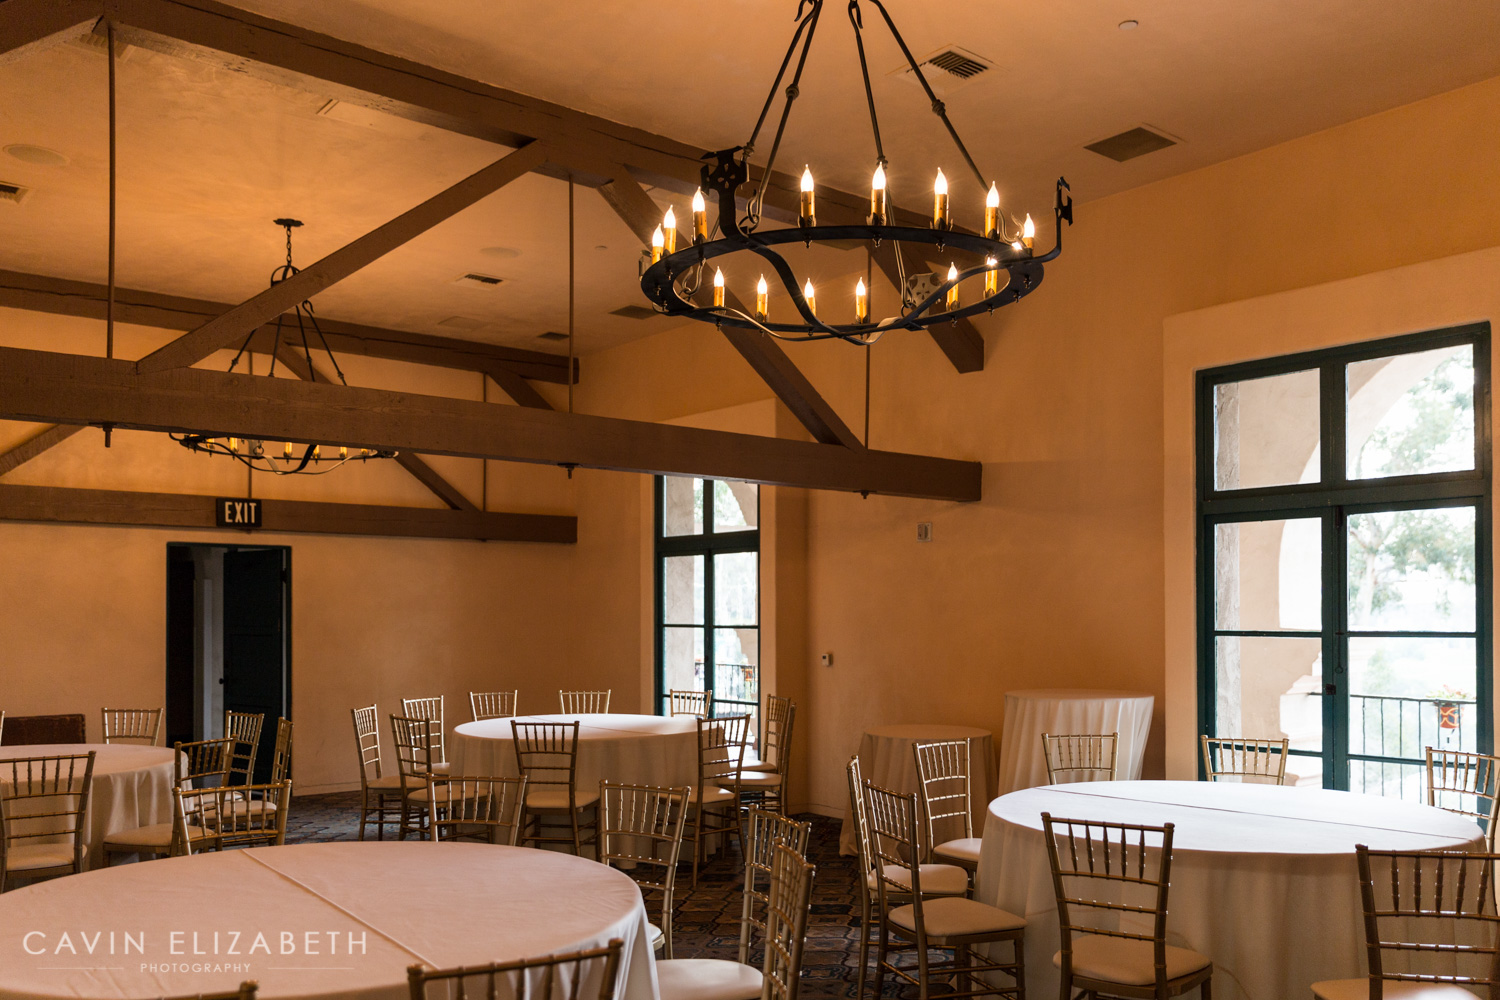 The Prado Alhambra room at Balboa Park, reception venues in San Diego